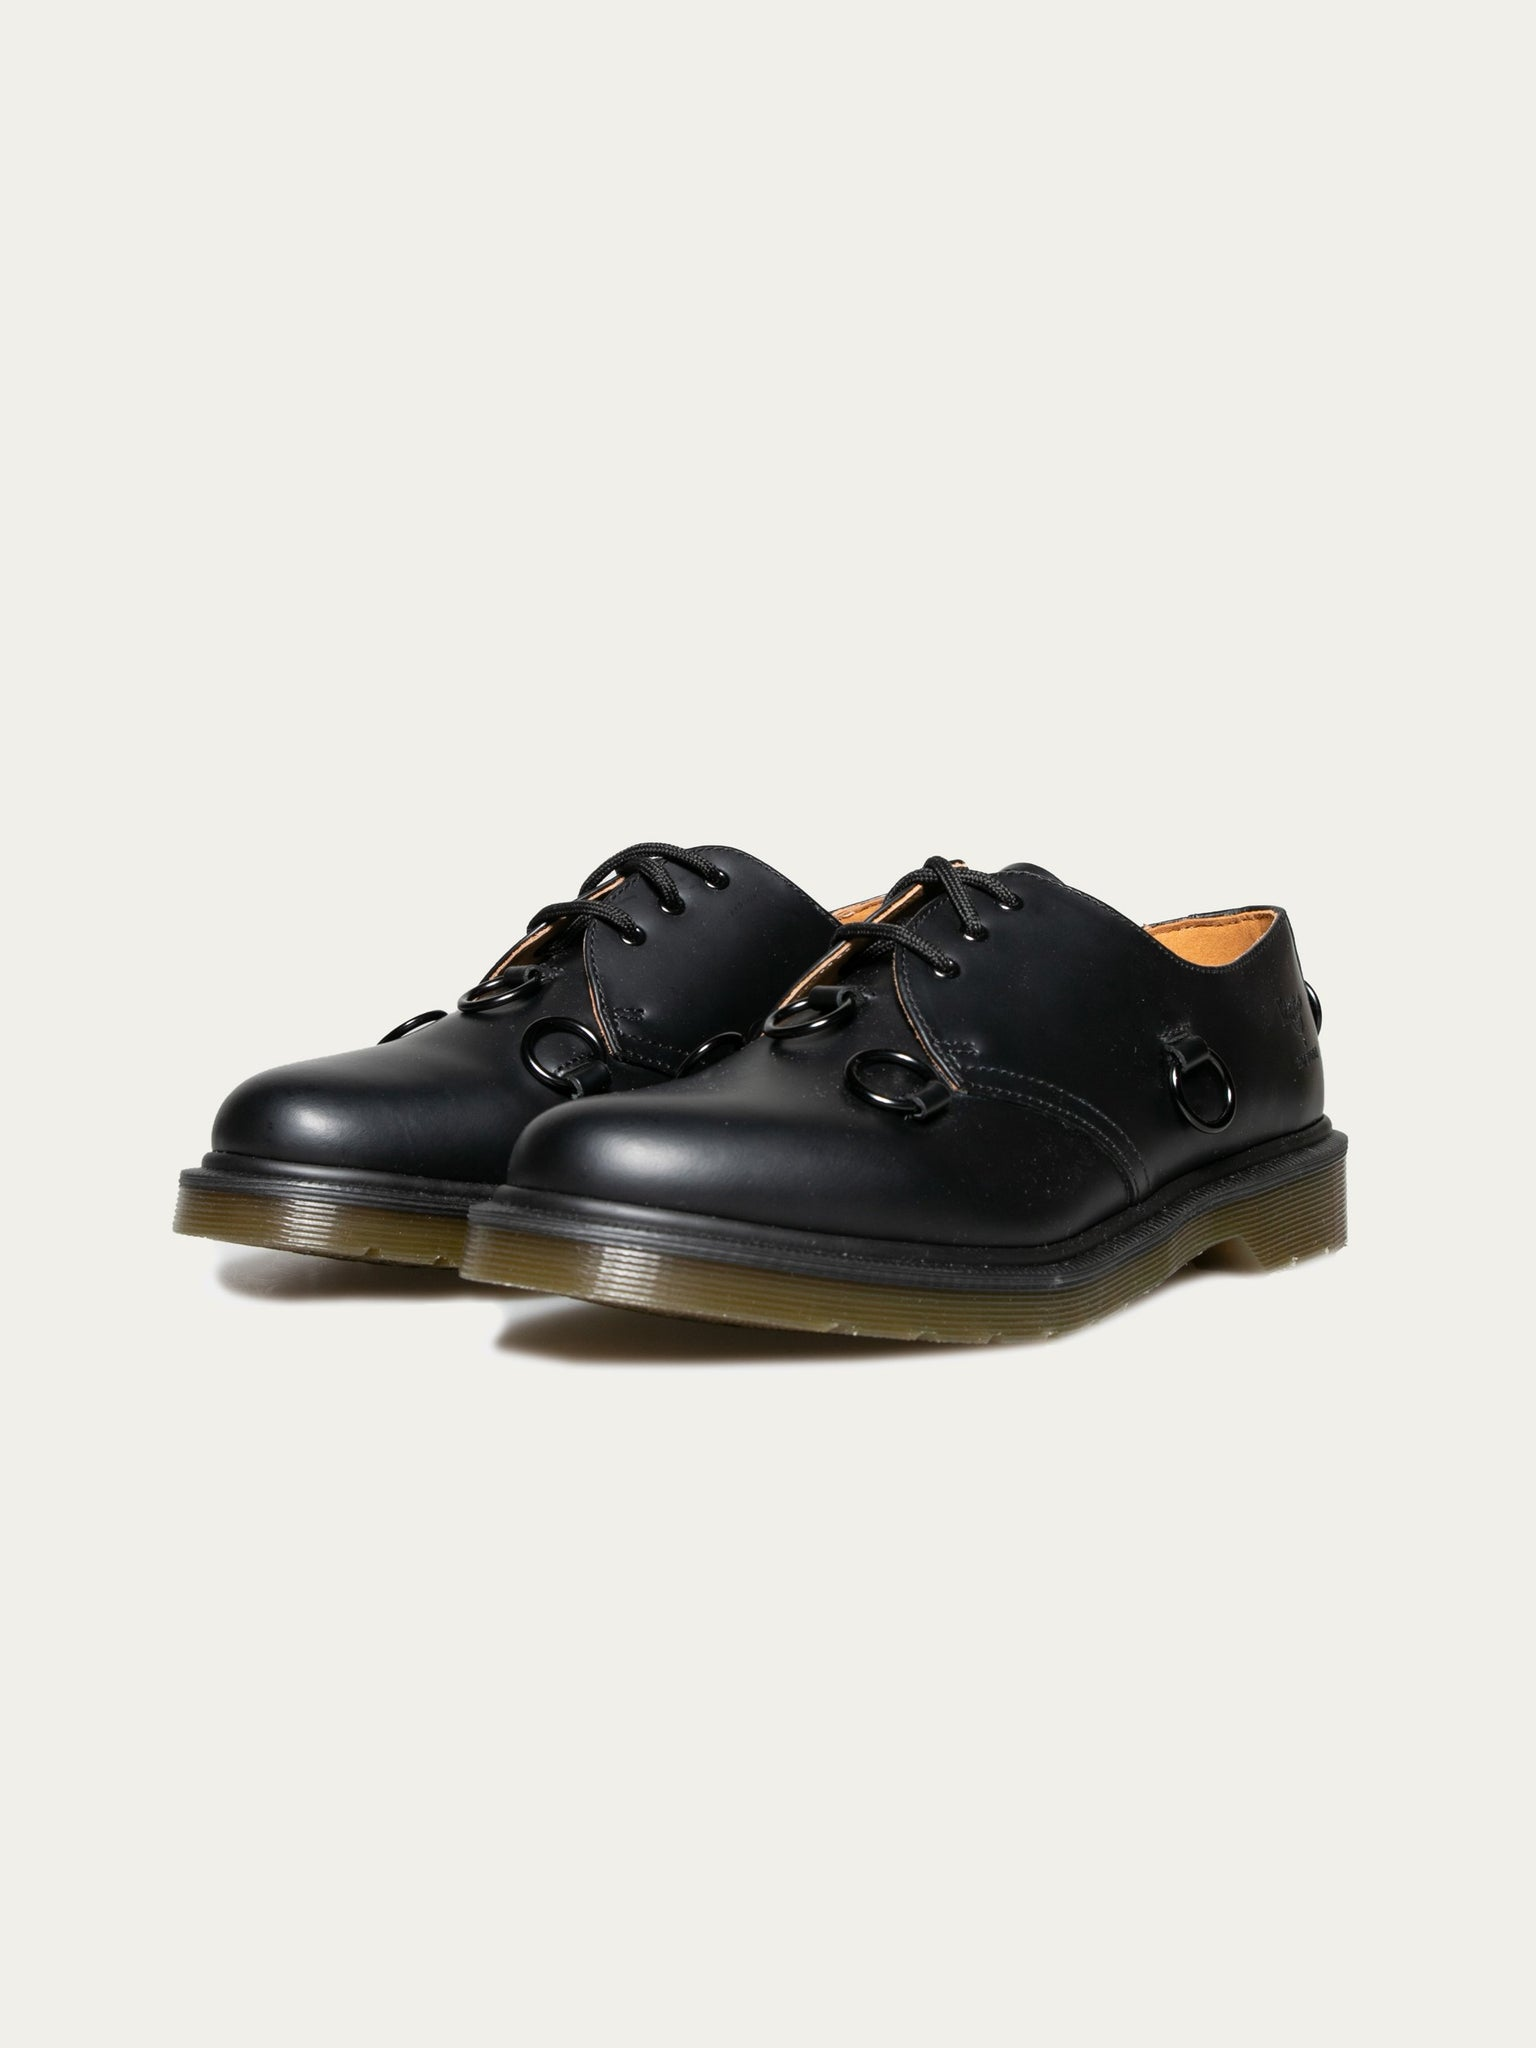 raf-simins-x-dr-martens-low-shoe-with-nickel-rings